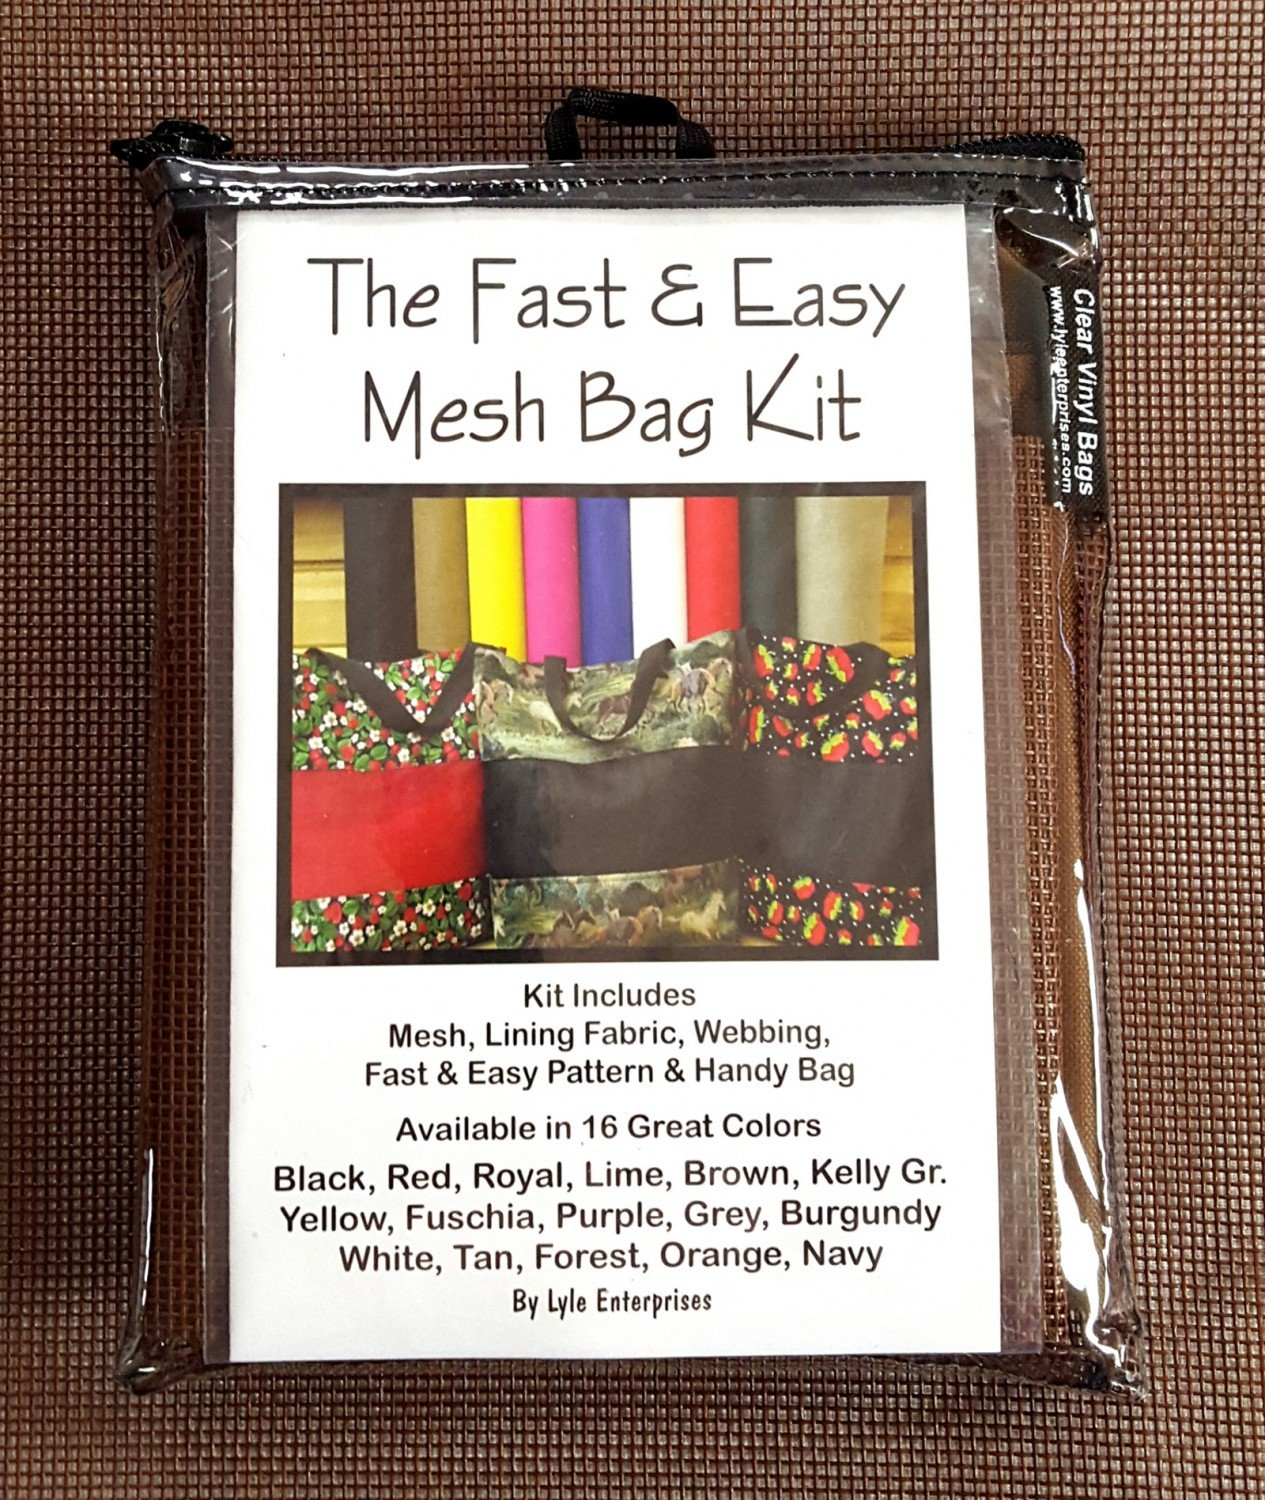 Brown Mesh Bag Kit - MBK-51 - MAY BE RESTOCKED UPON REQUEST